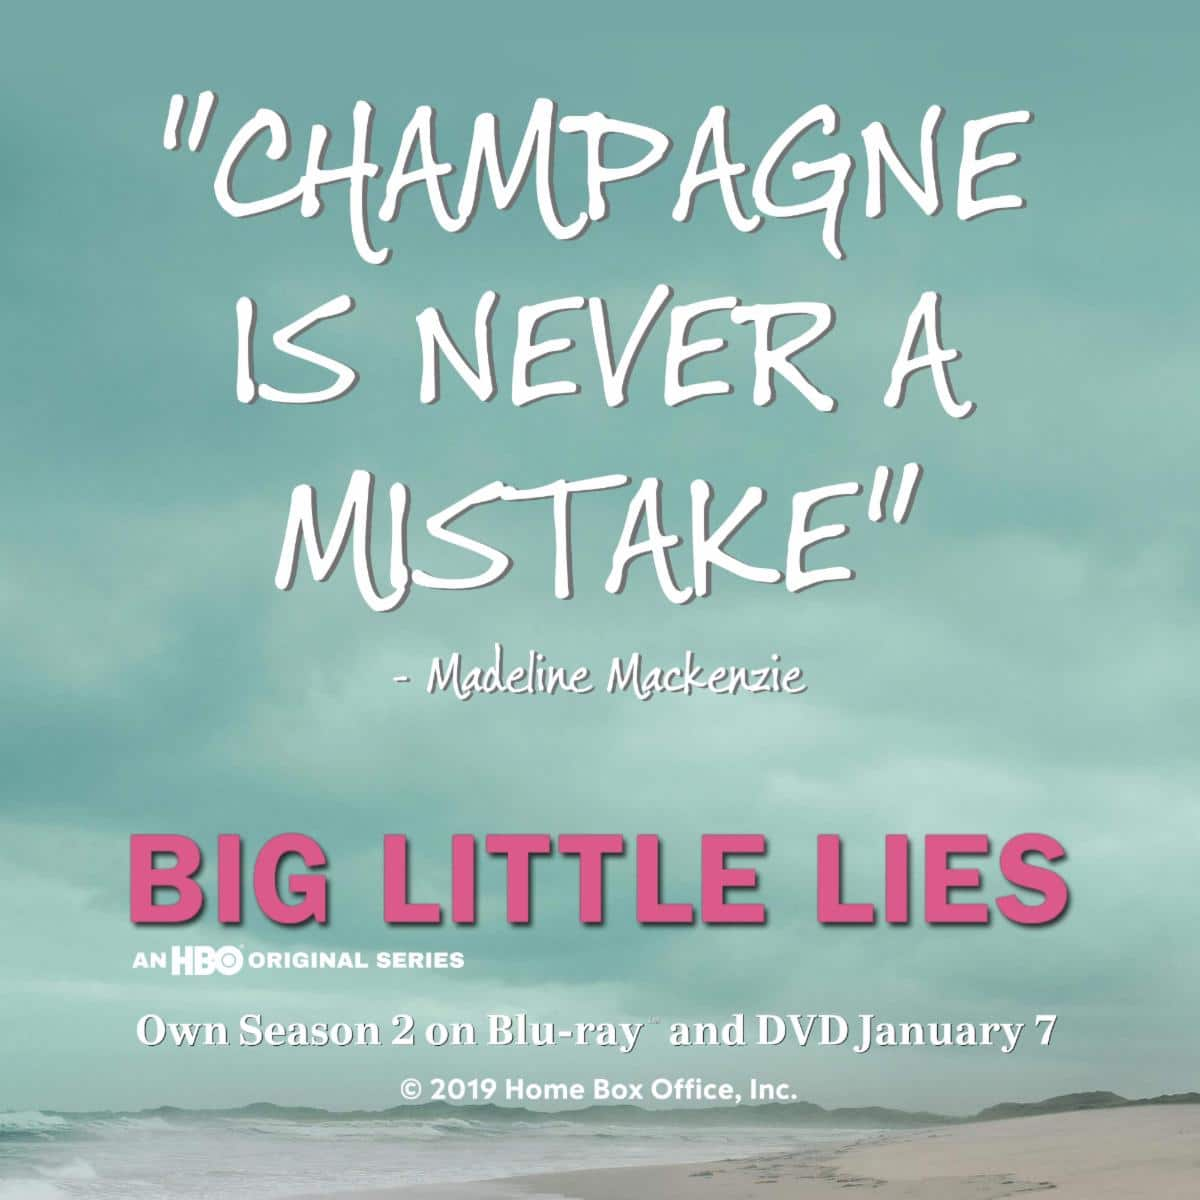 Champange is never a mistake Big Little Lies. HBO's smash-hit big Little Lies returns for more drama, secrets, and seduction then ever before with the release of Big Little Lies: The Complete Second Season on DVD from Warner Bros. Home Entertainment on January 7, 2019